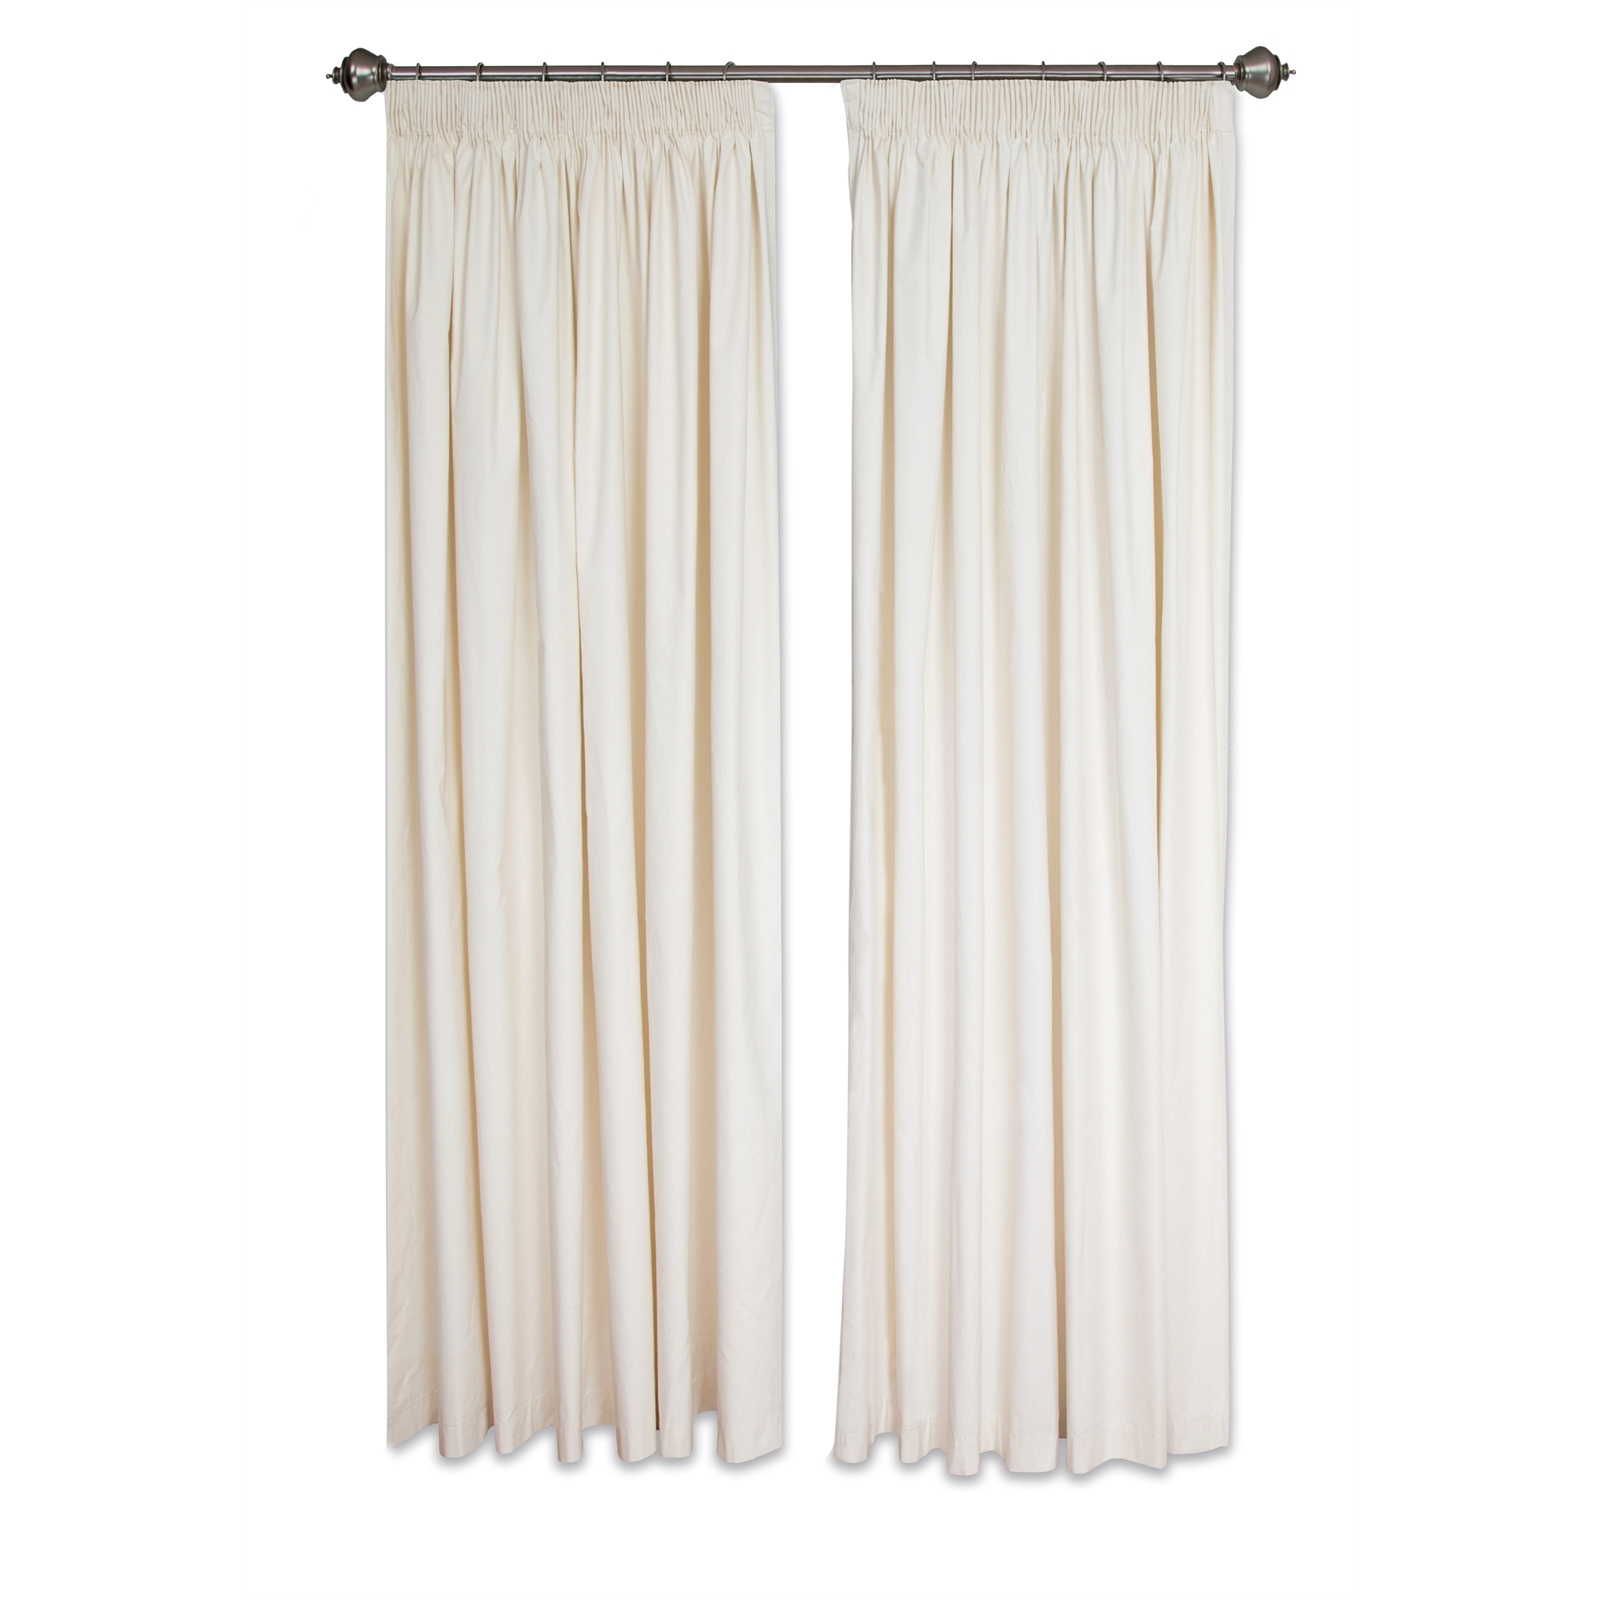 Homebase 2.3 - 3 x 2.2m Calico Thermal Curtain